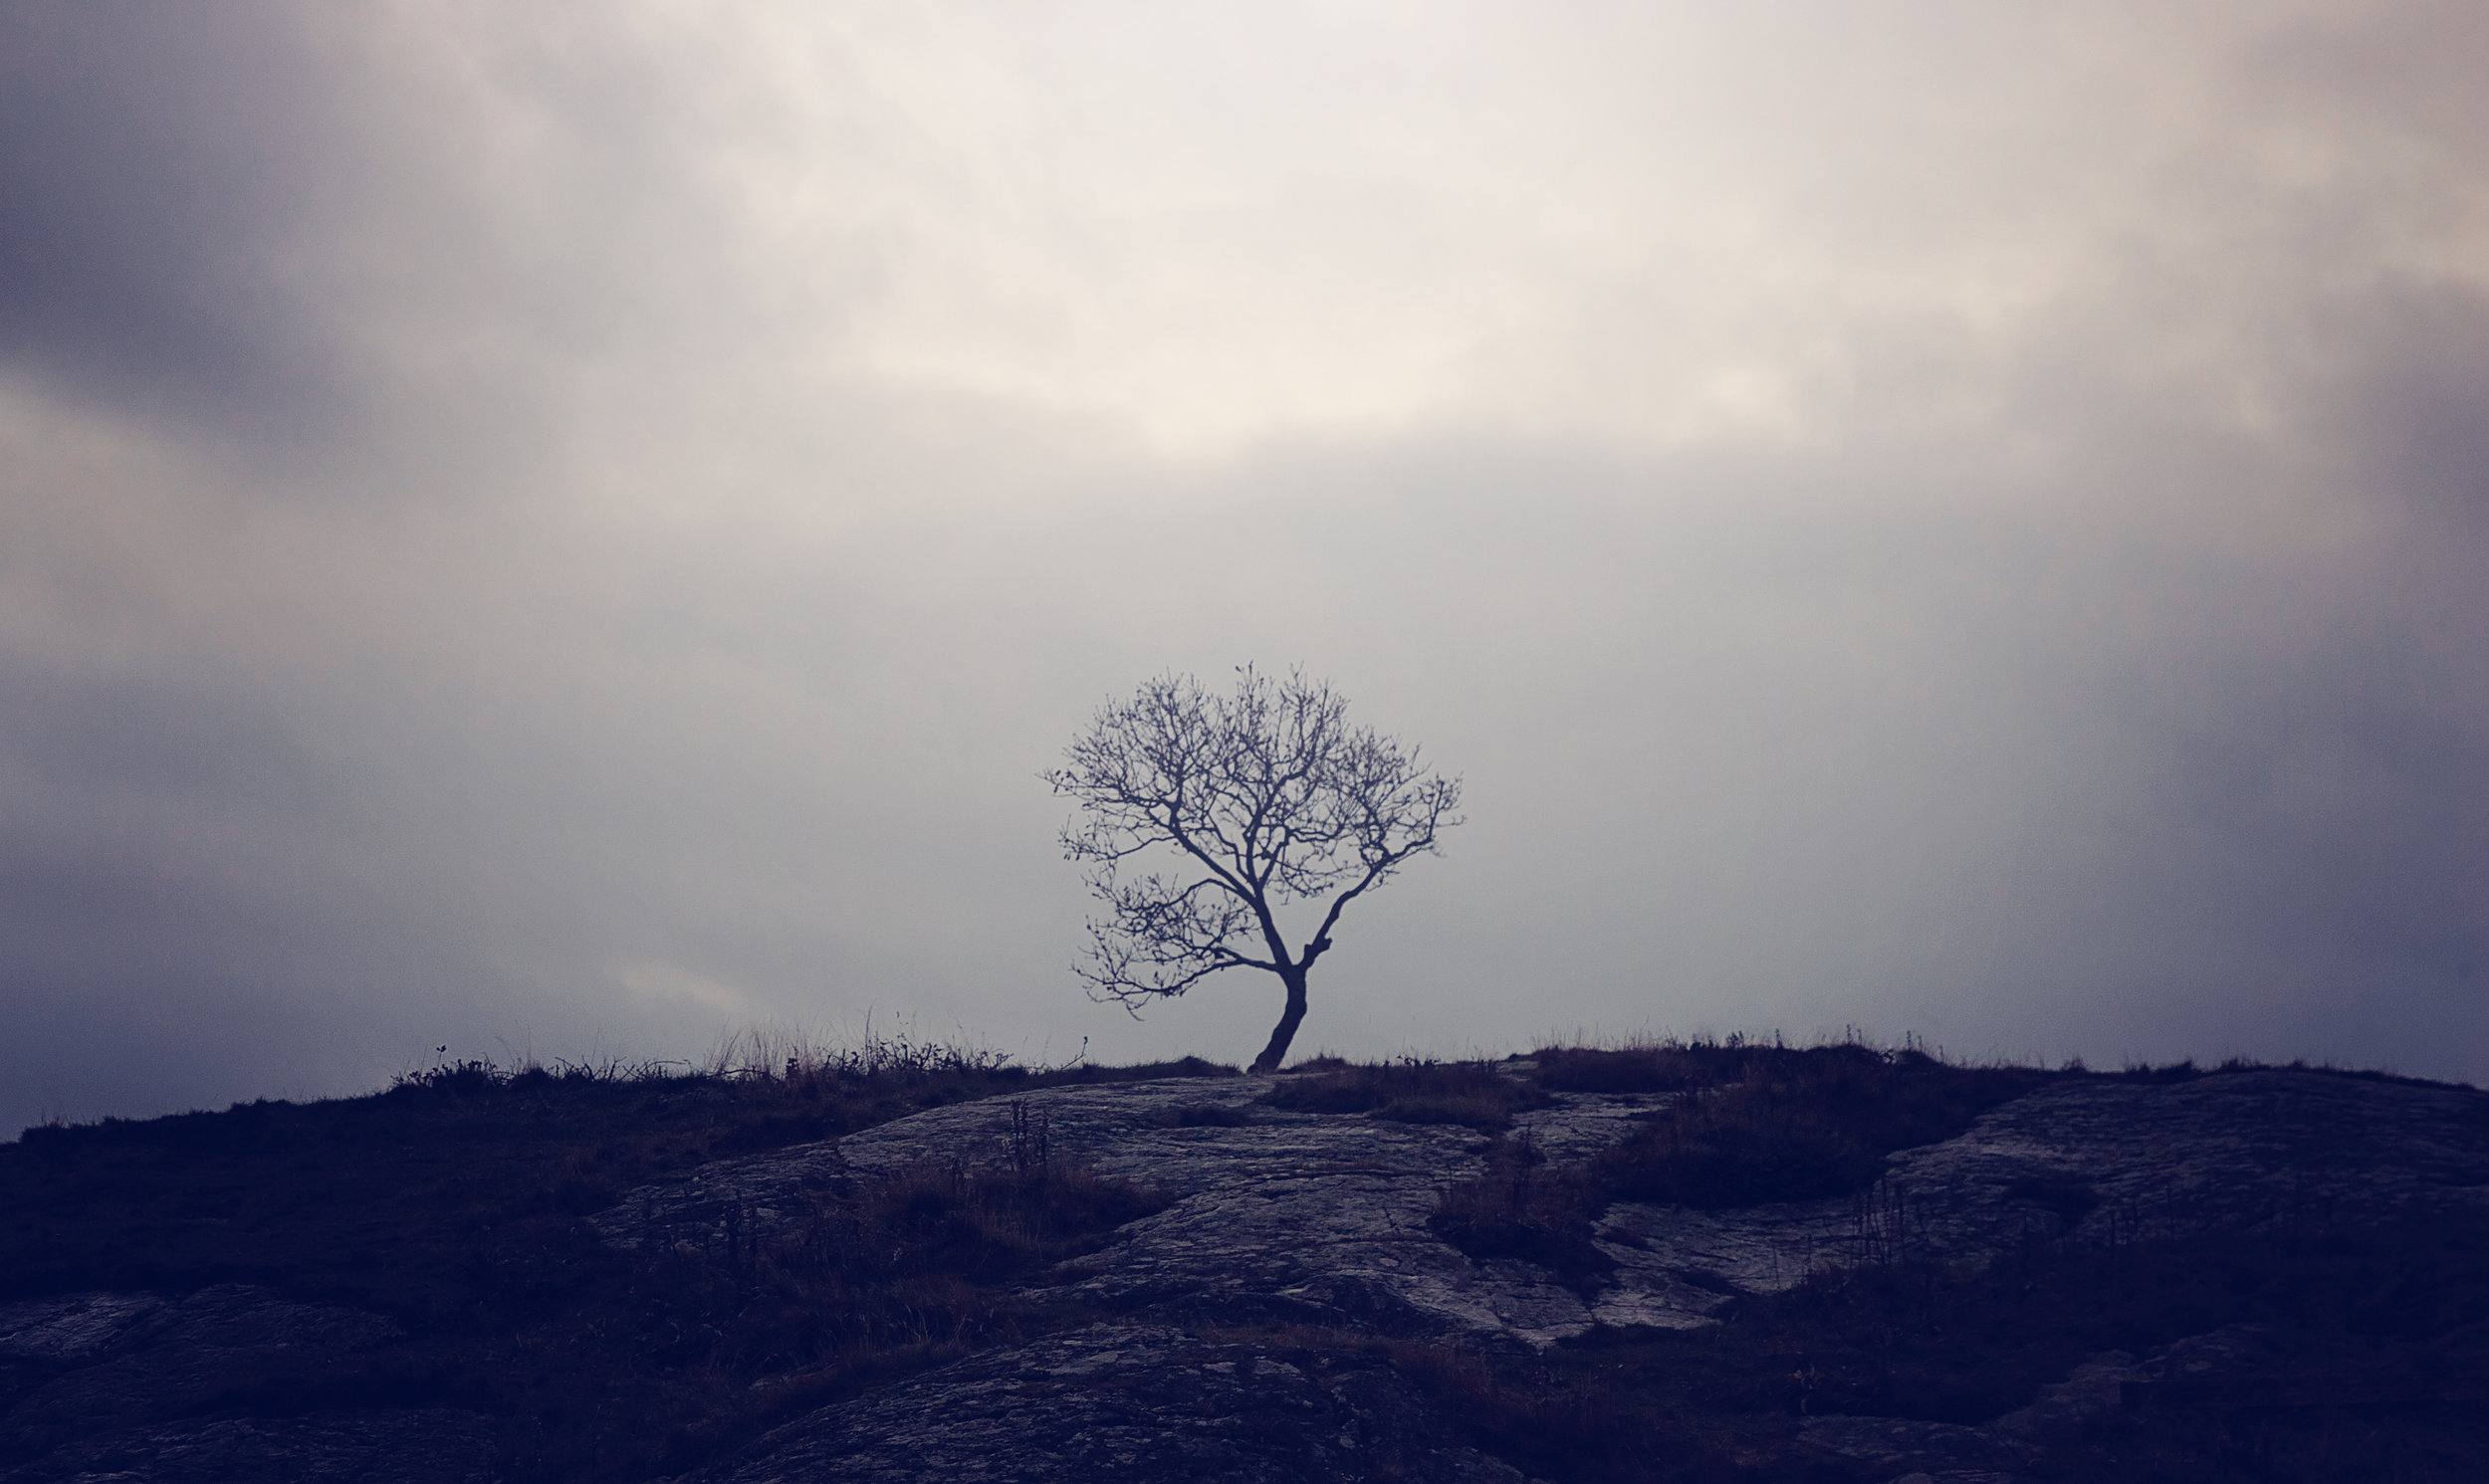 Branno Lonely Tree 0686.jpg